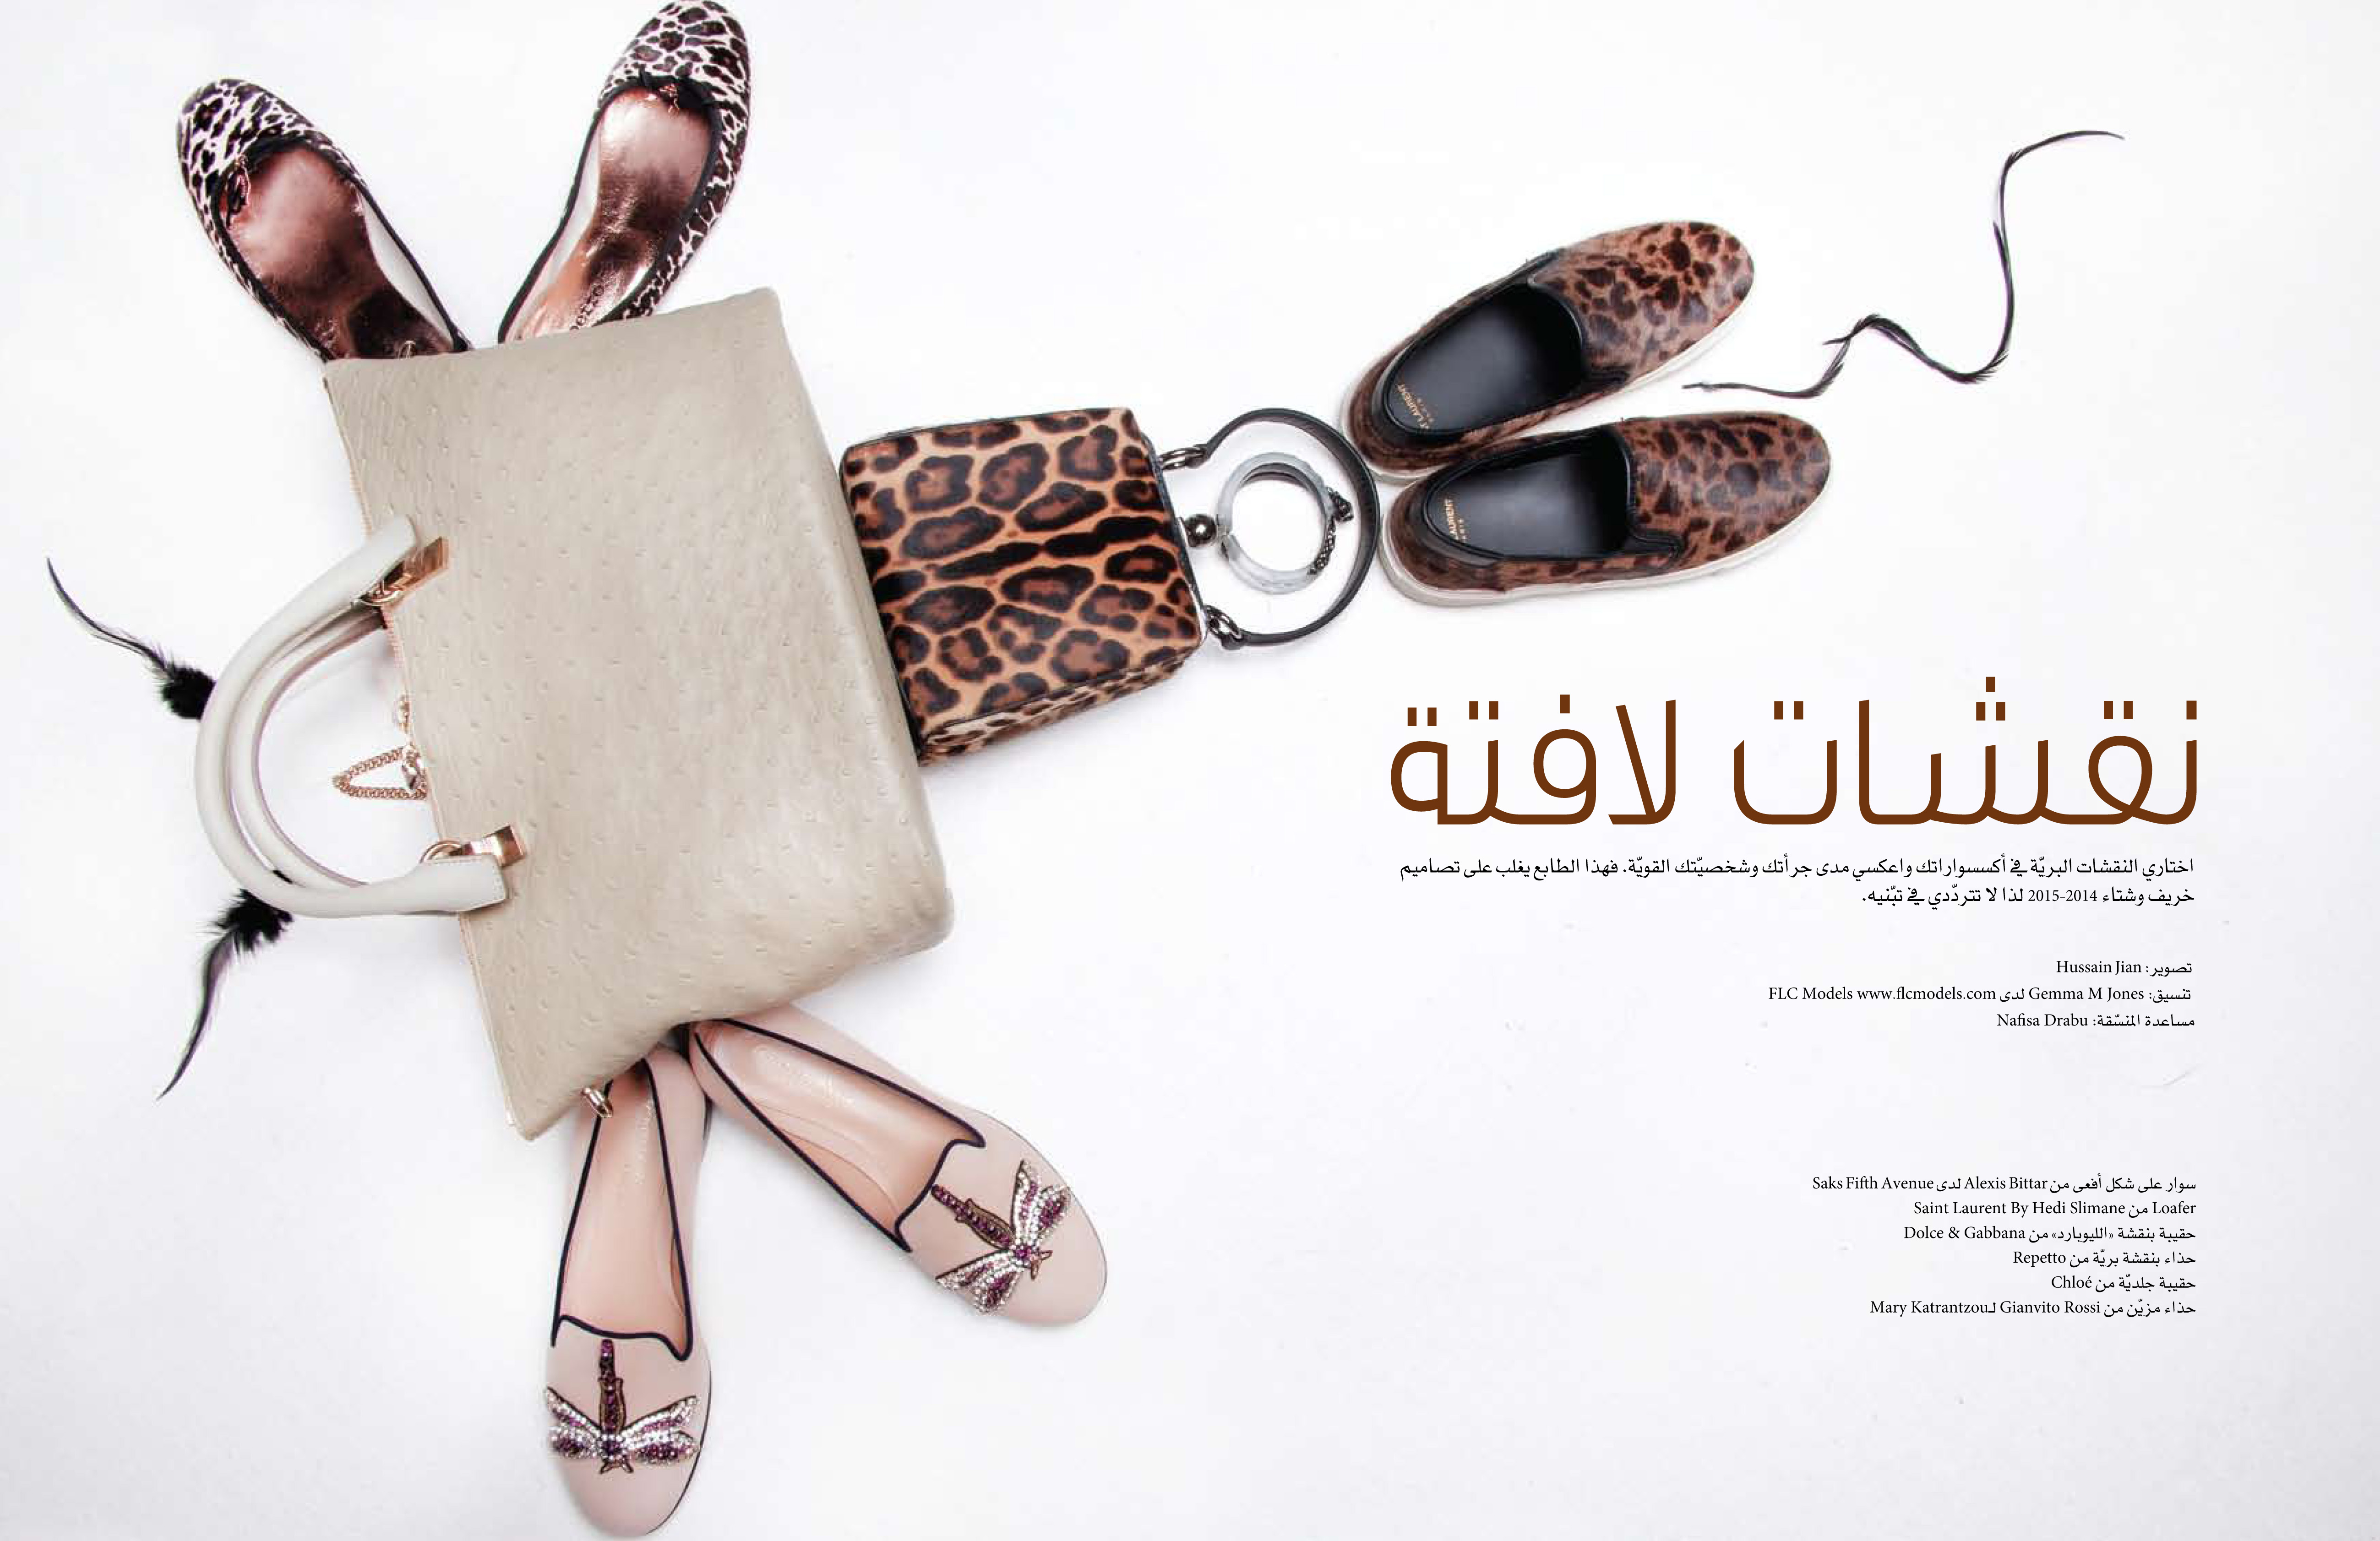 FLC Models & Talents - Catalogue Shoots - Haya Magazine - Animal Instinct